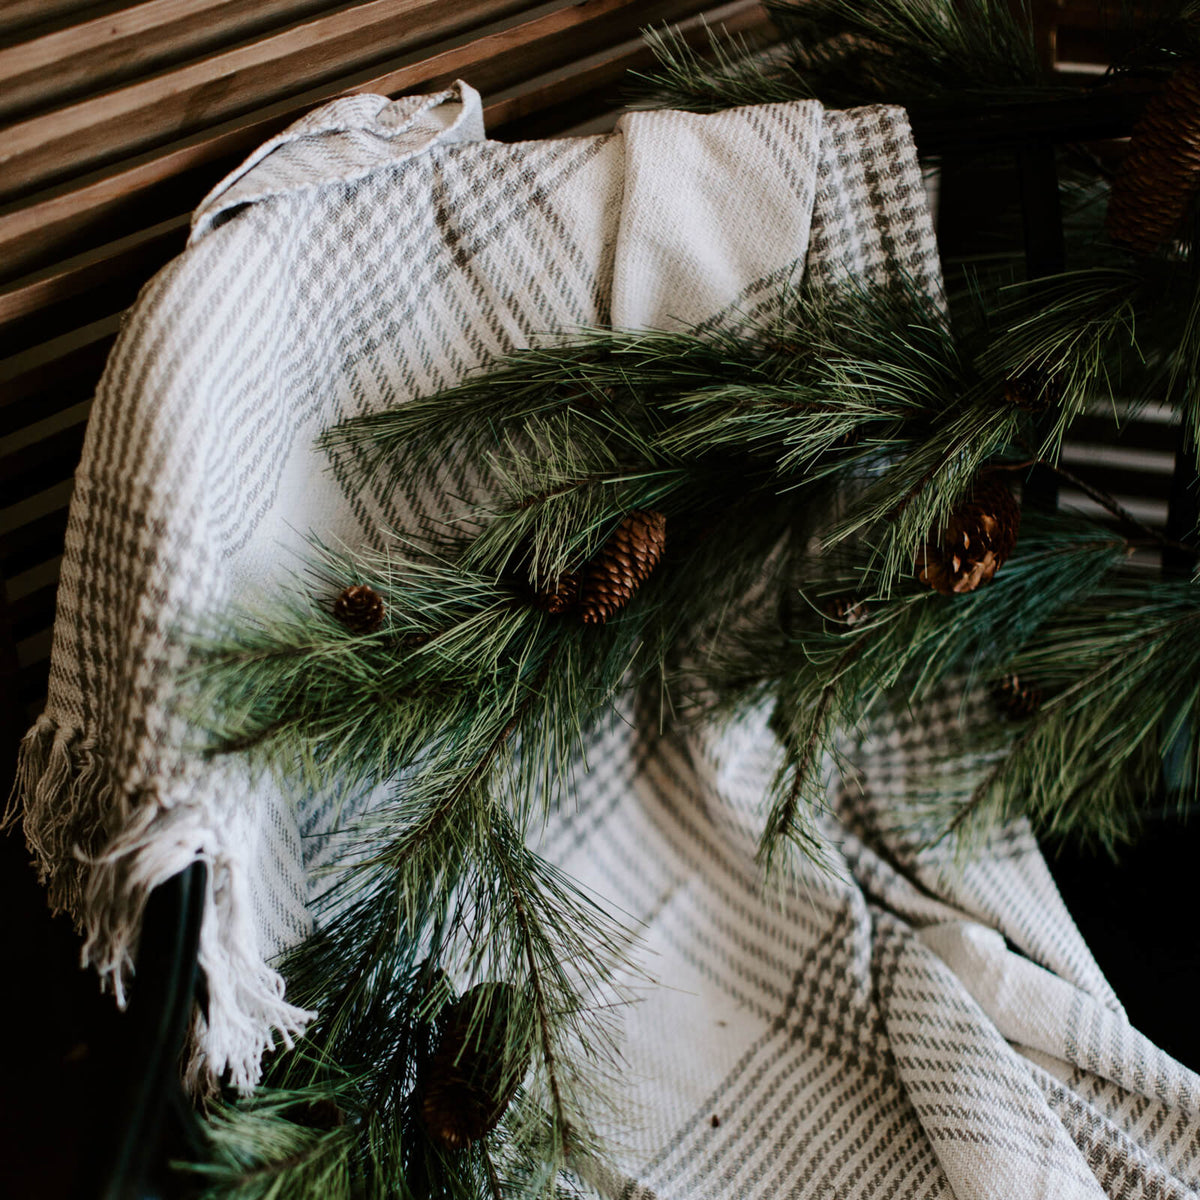 closeup of natural-looking faux 6 foot soft pine garland adorned with pinecones and draped across an entryway bench for holiday decorating